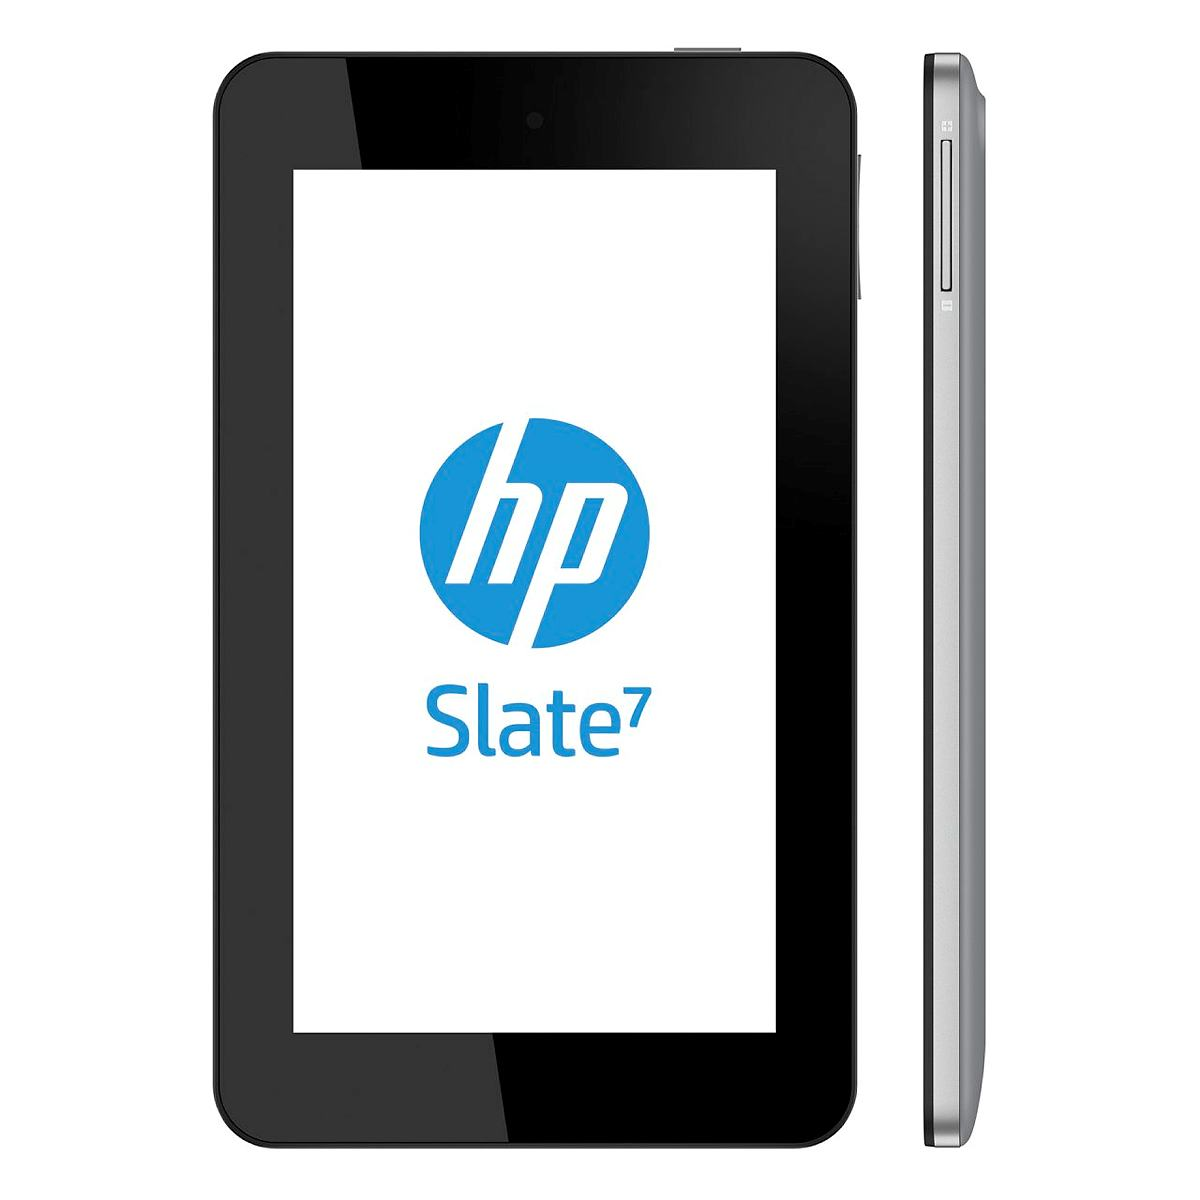 Surprise! HP's New Slate 7 Tablet Runs on Android.